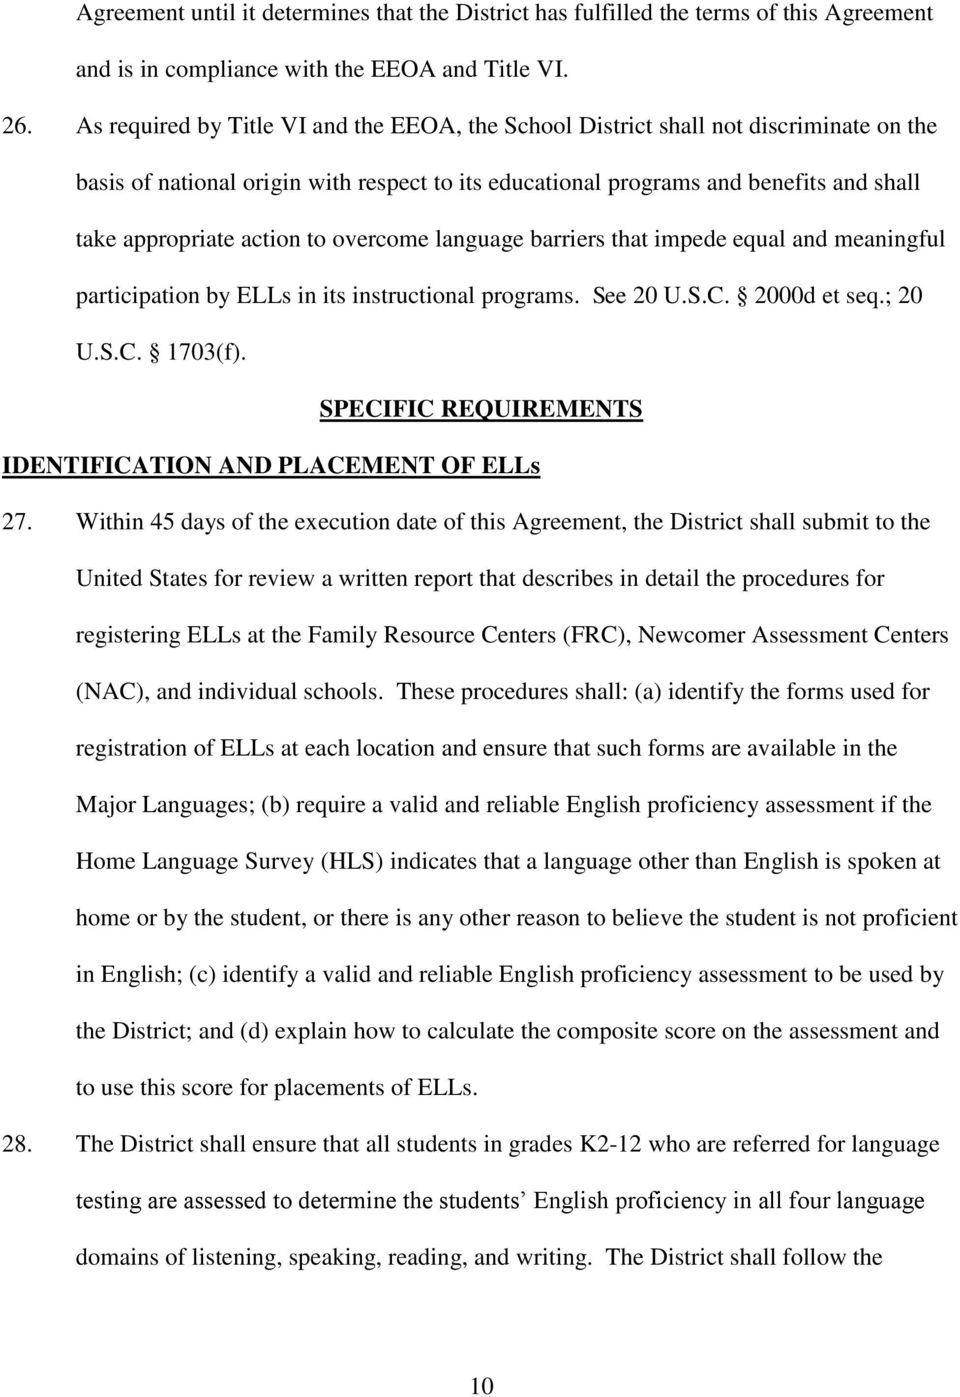 action to overcome language barriers that impede equal and meaningful participation by ELLs in its instructional programs. See 20 U.S.C. 2000d et seq.; 20 U.S.C. 1703(f).